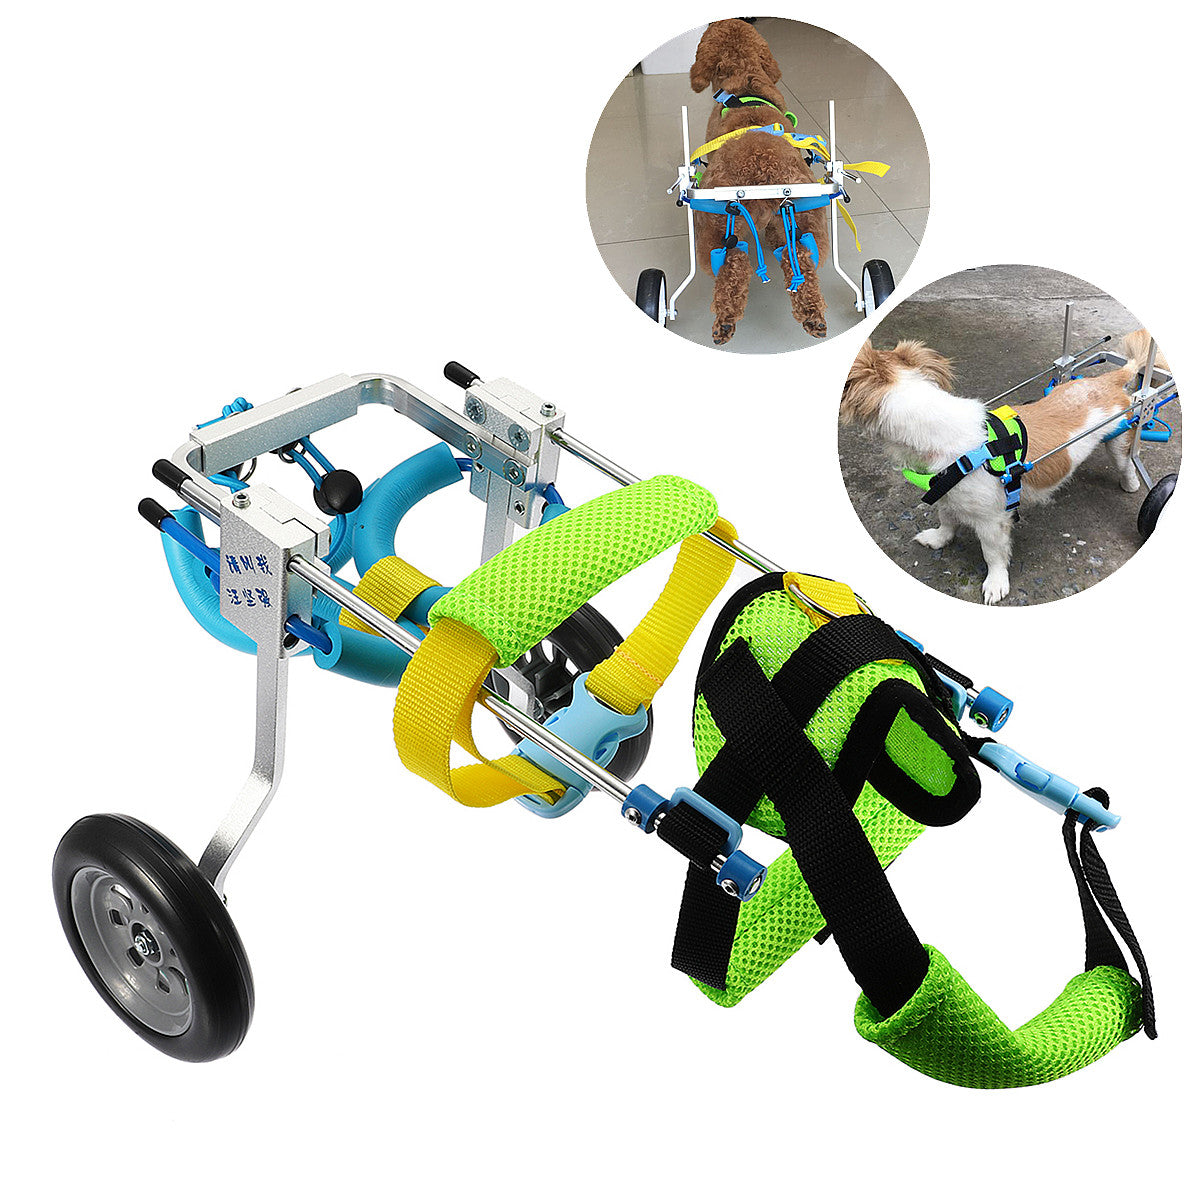 Pet Wheelchair (Adjustable Strap) - Kangaroo Buddy